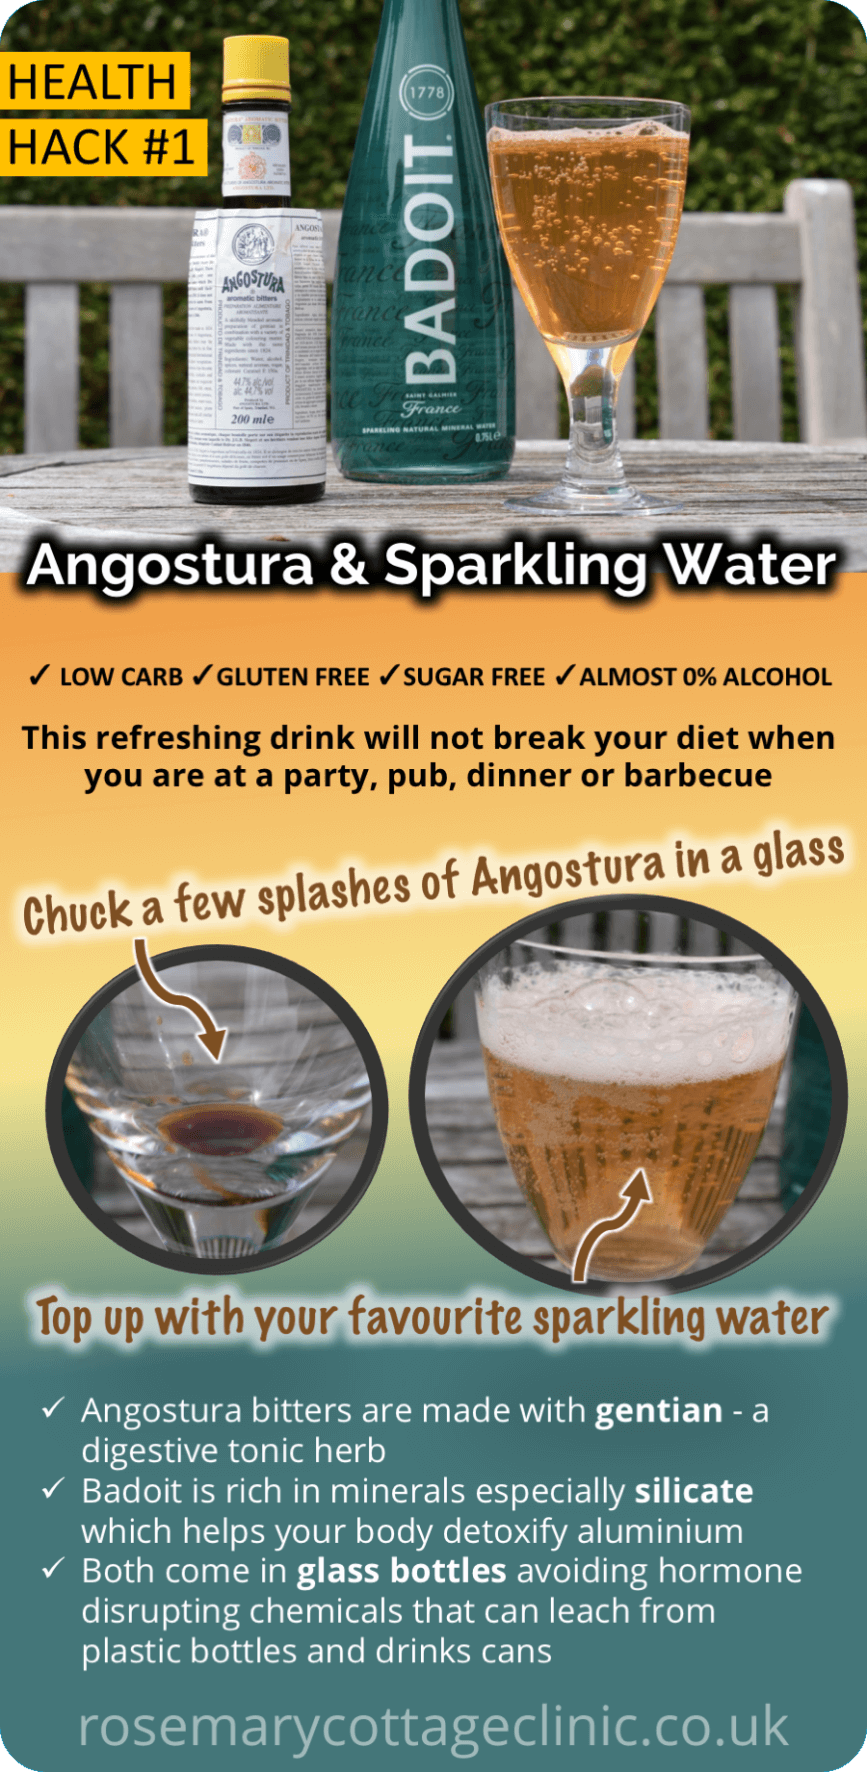 An infographic showing how a sugar-free fizzy drink (soda) can be made using sparkling water and Angostura bitters.